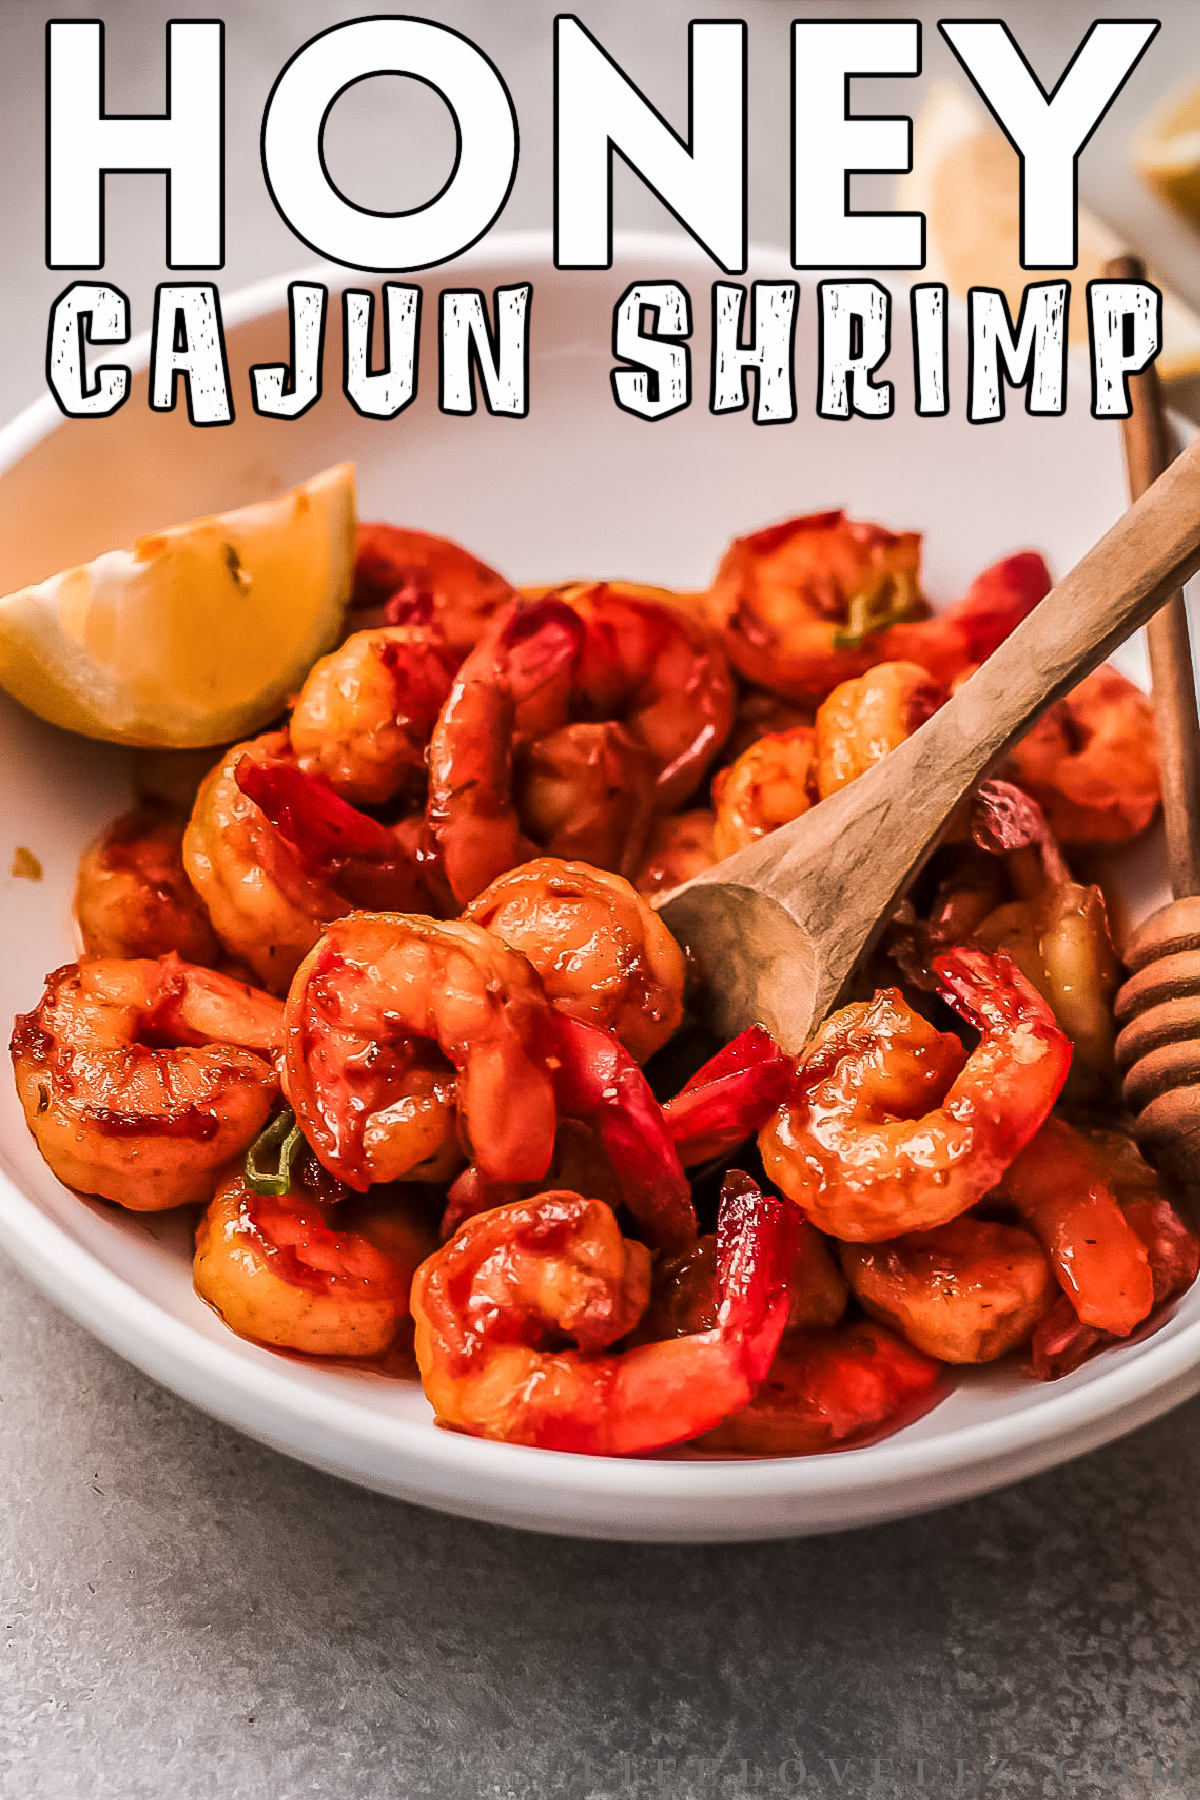 Amazingly flavorful and tender Honey Cajun Shrimp featuring a sweet & spicy sauce. This recipe is so easy to make you won't believe it.